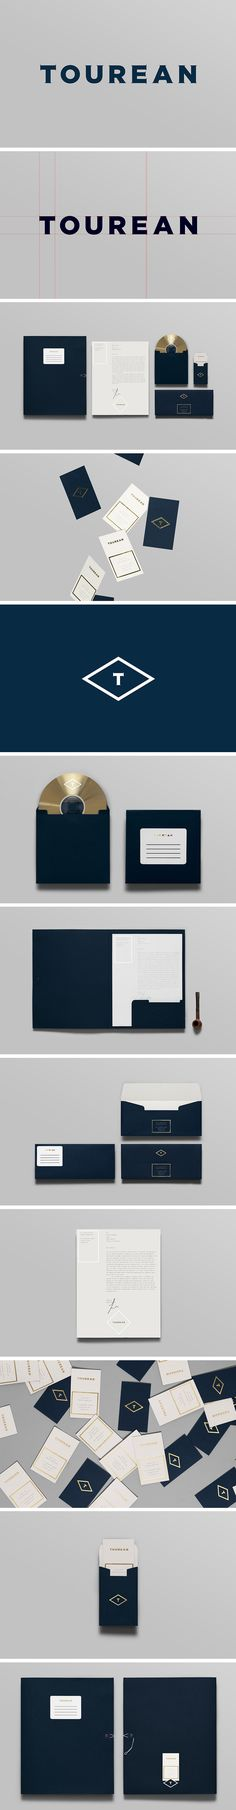 Tourean - Corporate branding